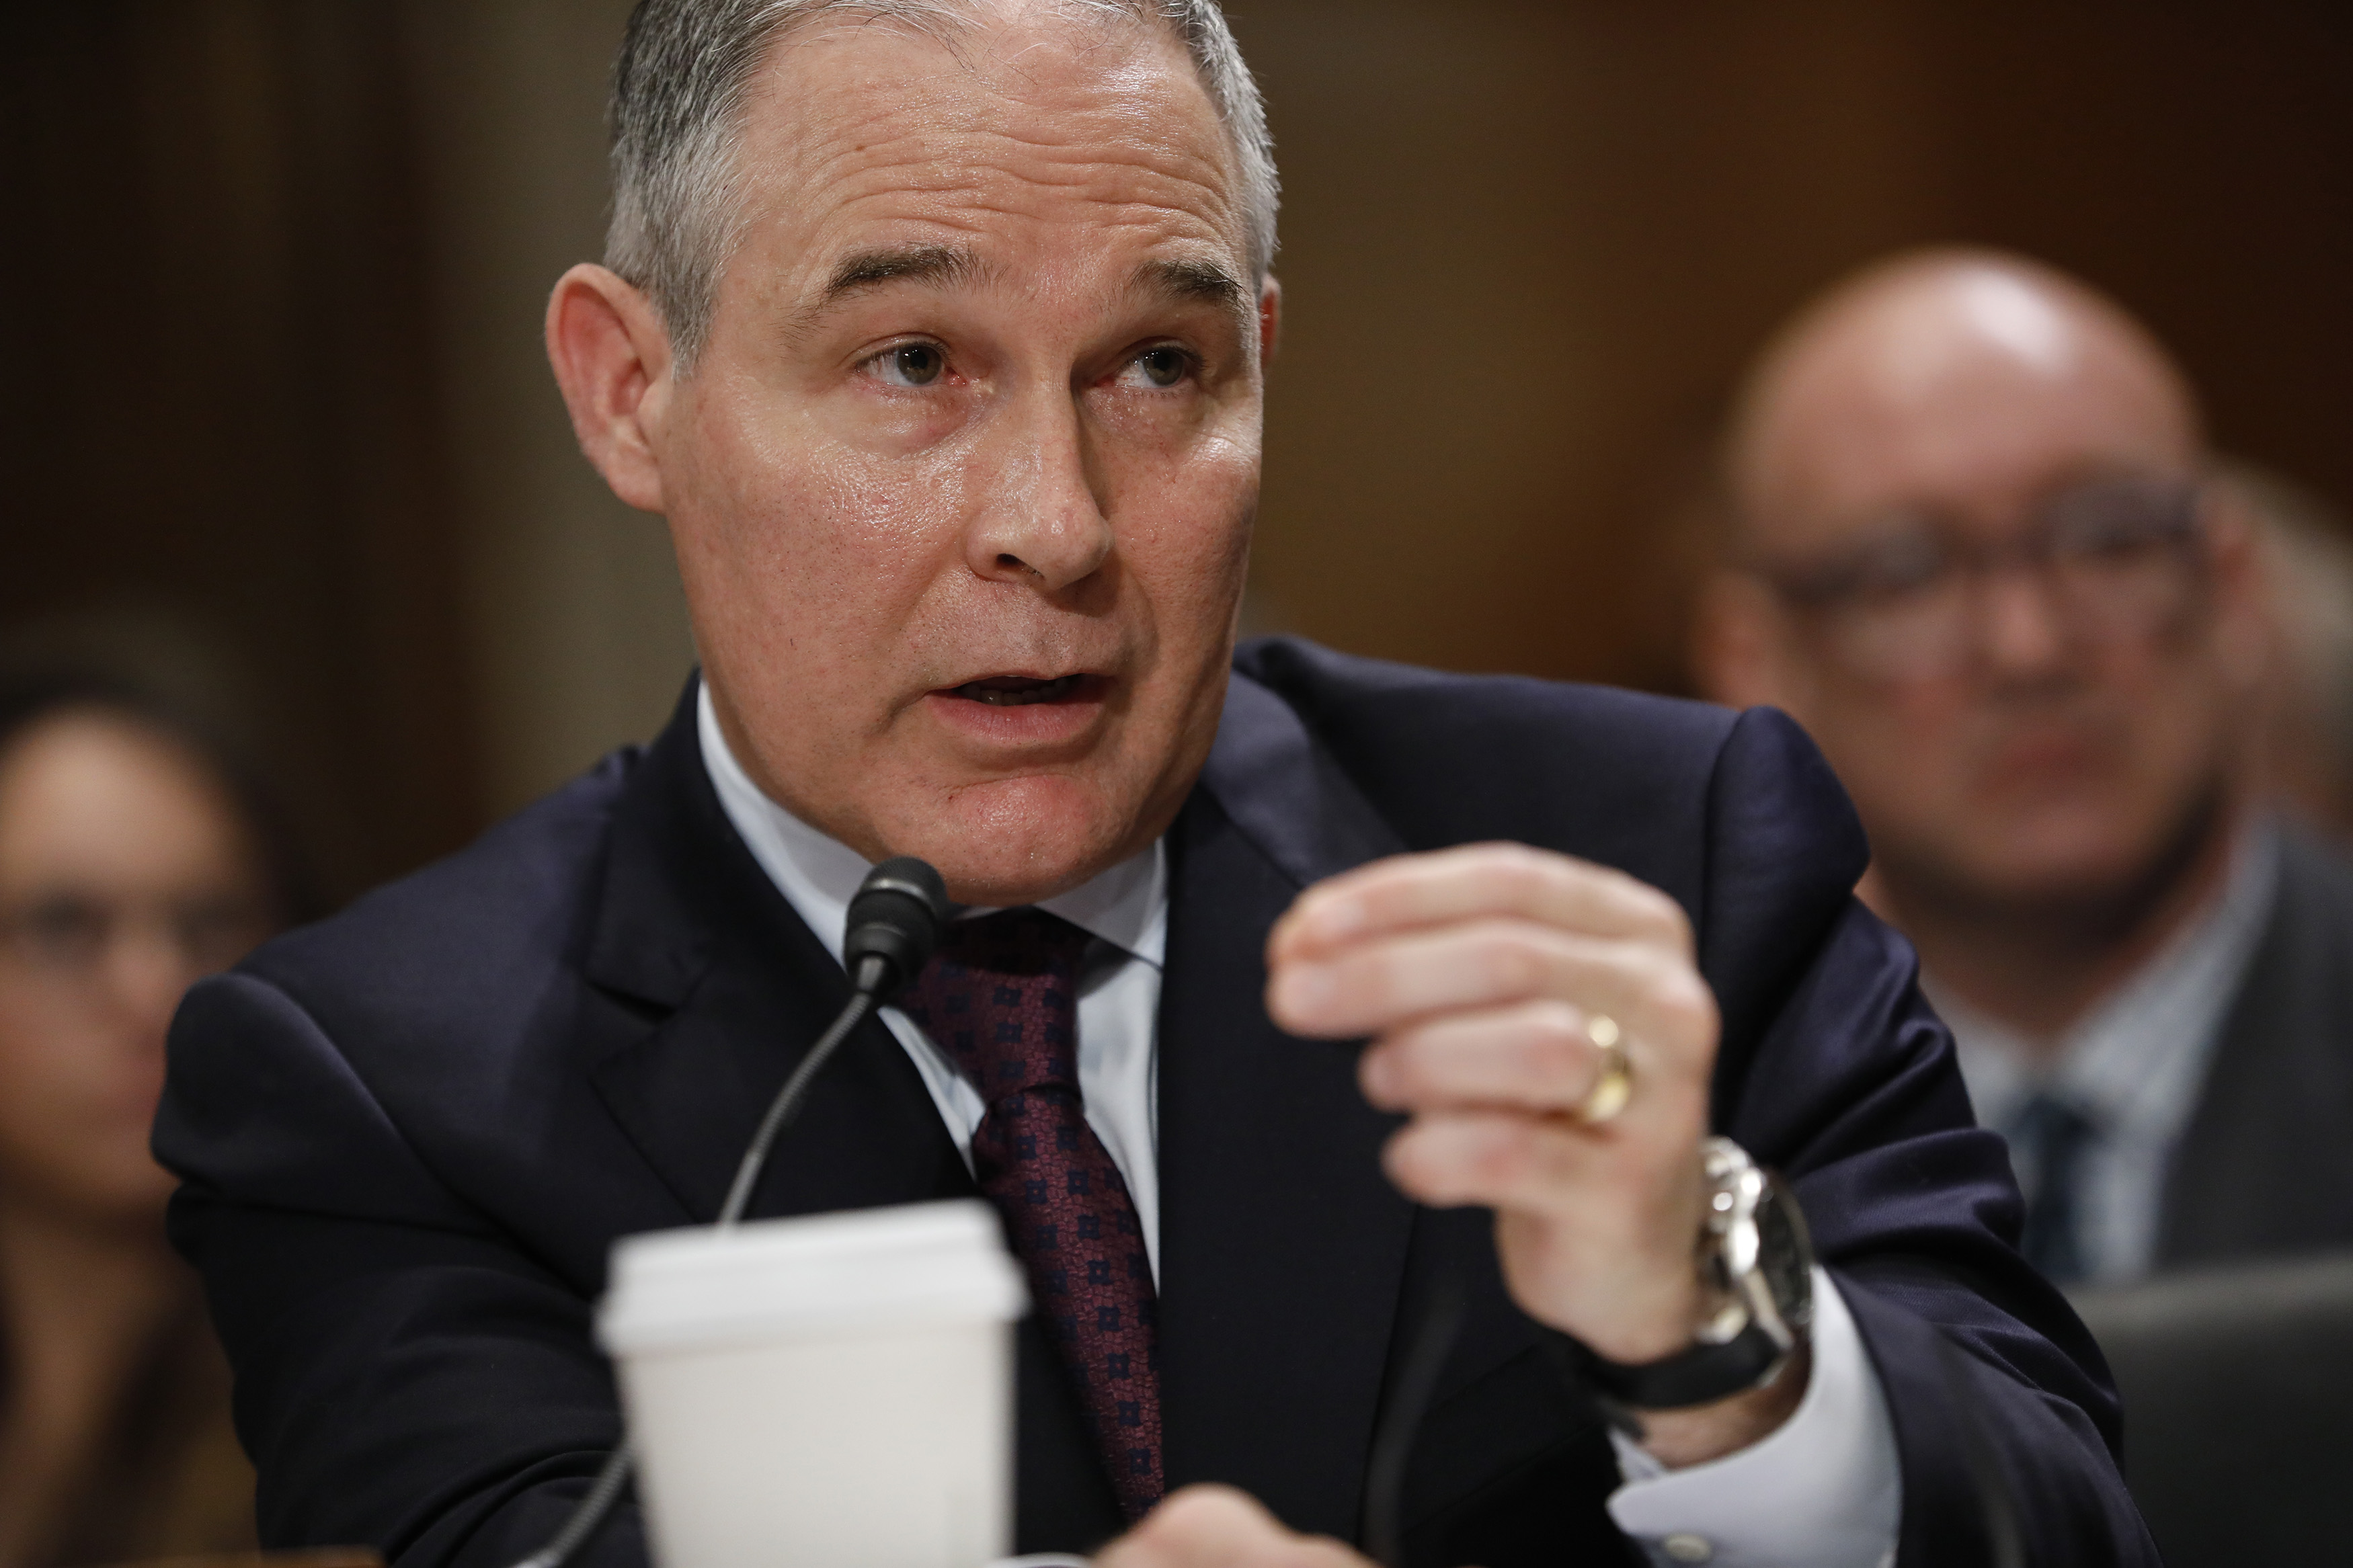 Oklahoma Attorney General Scott Pruitt, President-elect Donald Trump's choice to head the Environmental Protection Agency, testifies during his confirmation hearing before the Senate Committee on Environment and Public Works on Capitol Hill on Jan. 18 in Washington, DC.